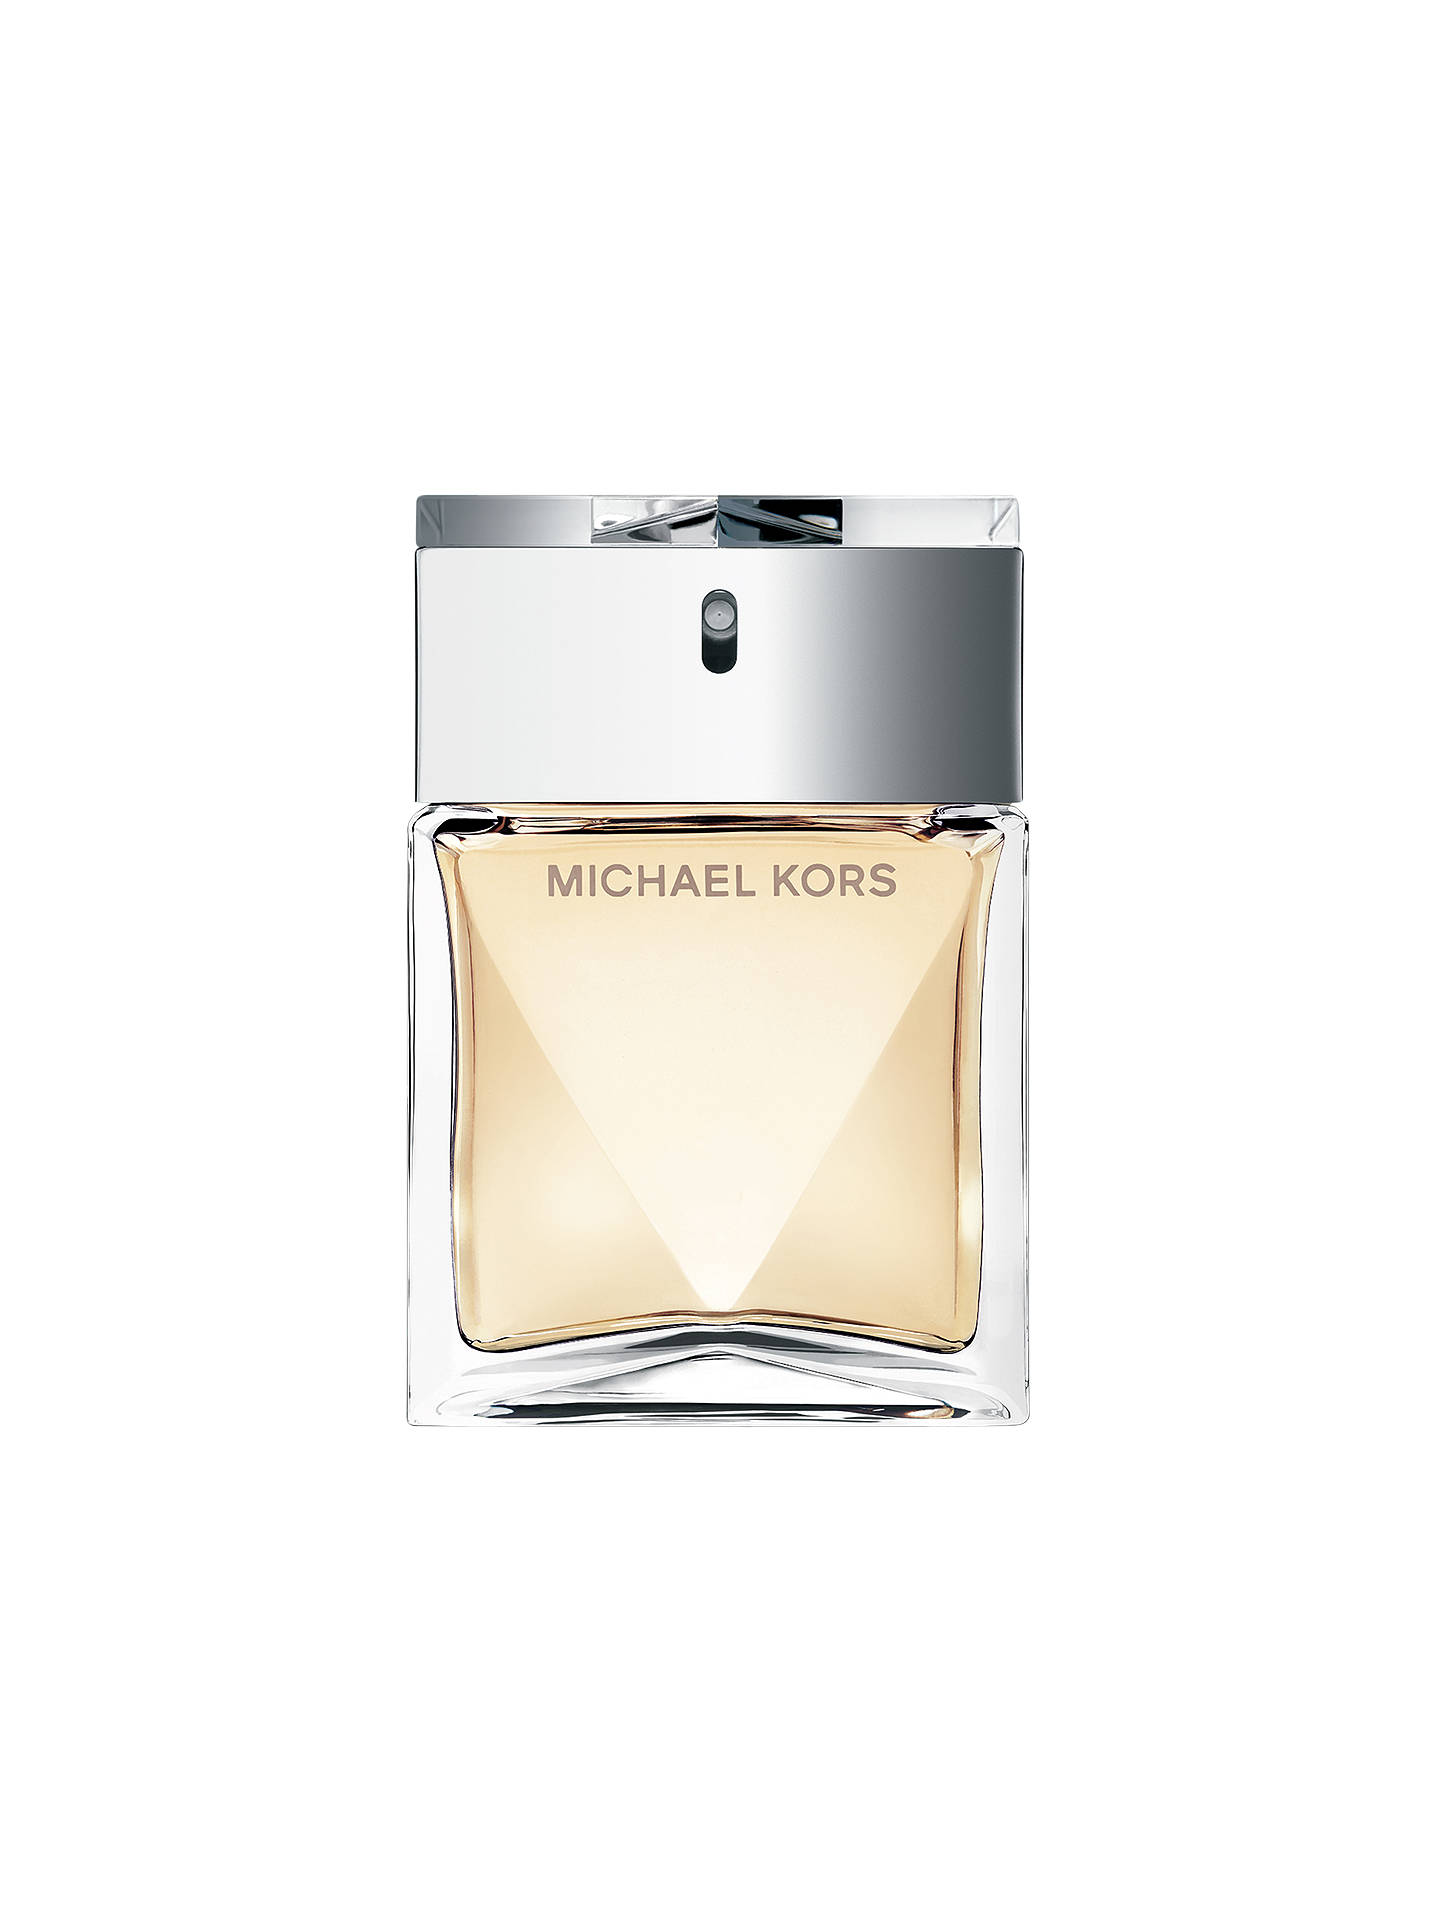 michael kors michael eau de parfum 100ml at john lewis partners rh johnlewis com